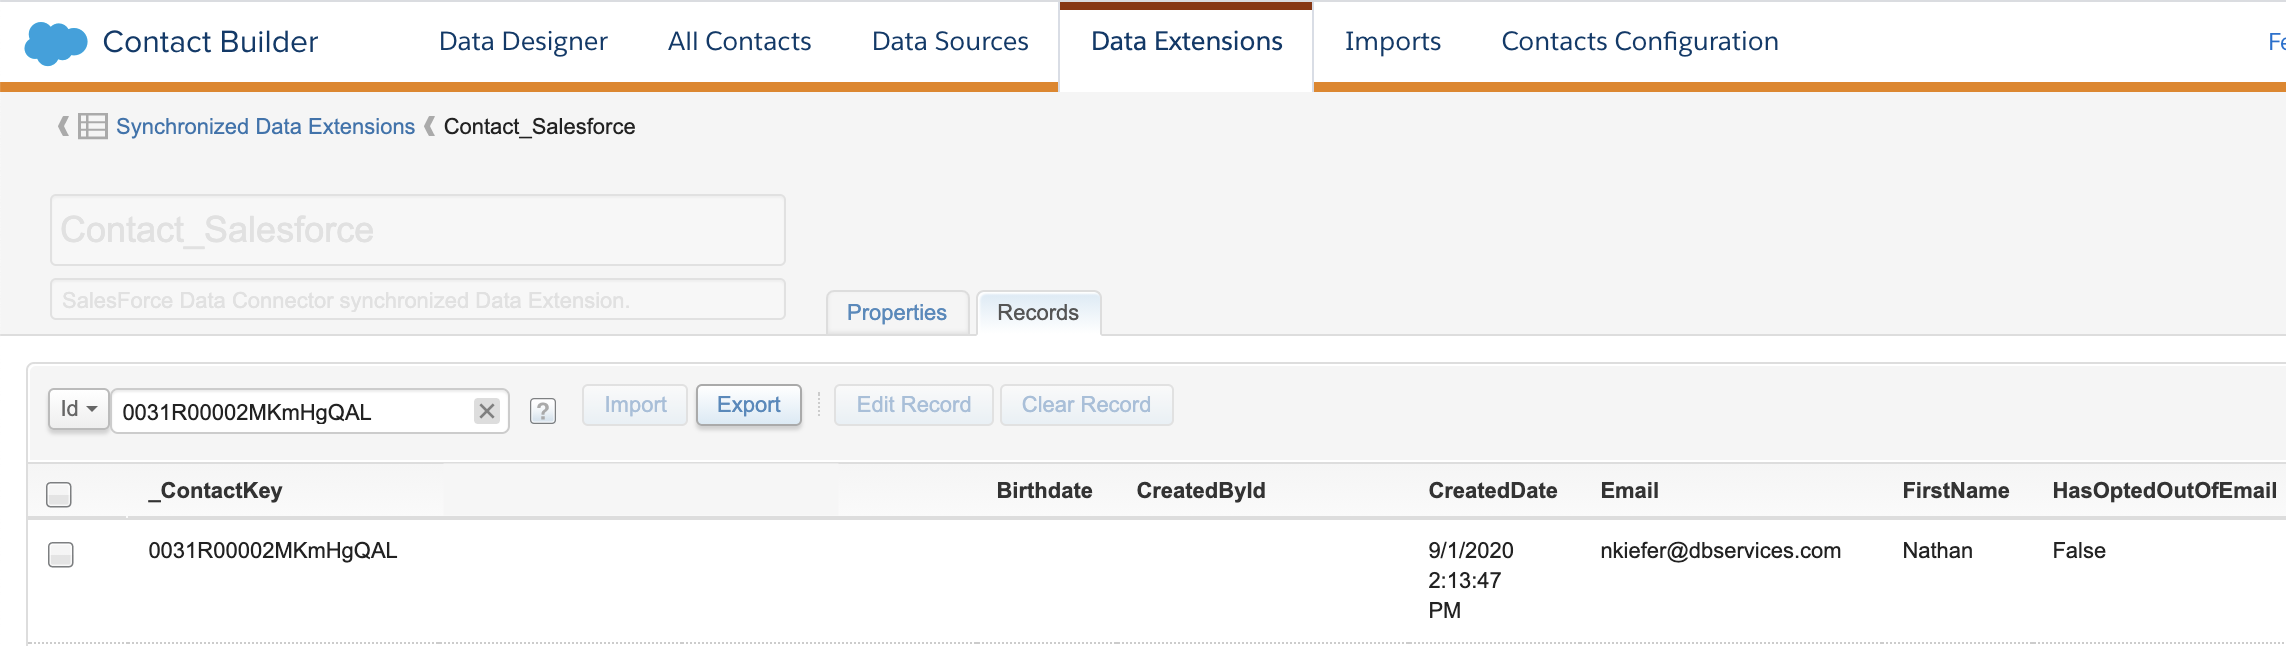 Sales Cloud Contact Synced to Marketing Cloud Example